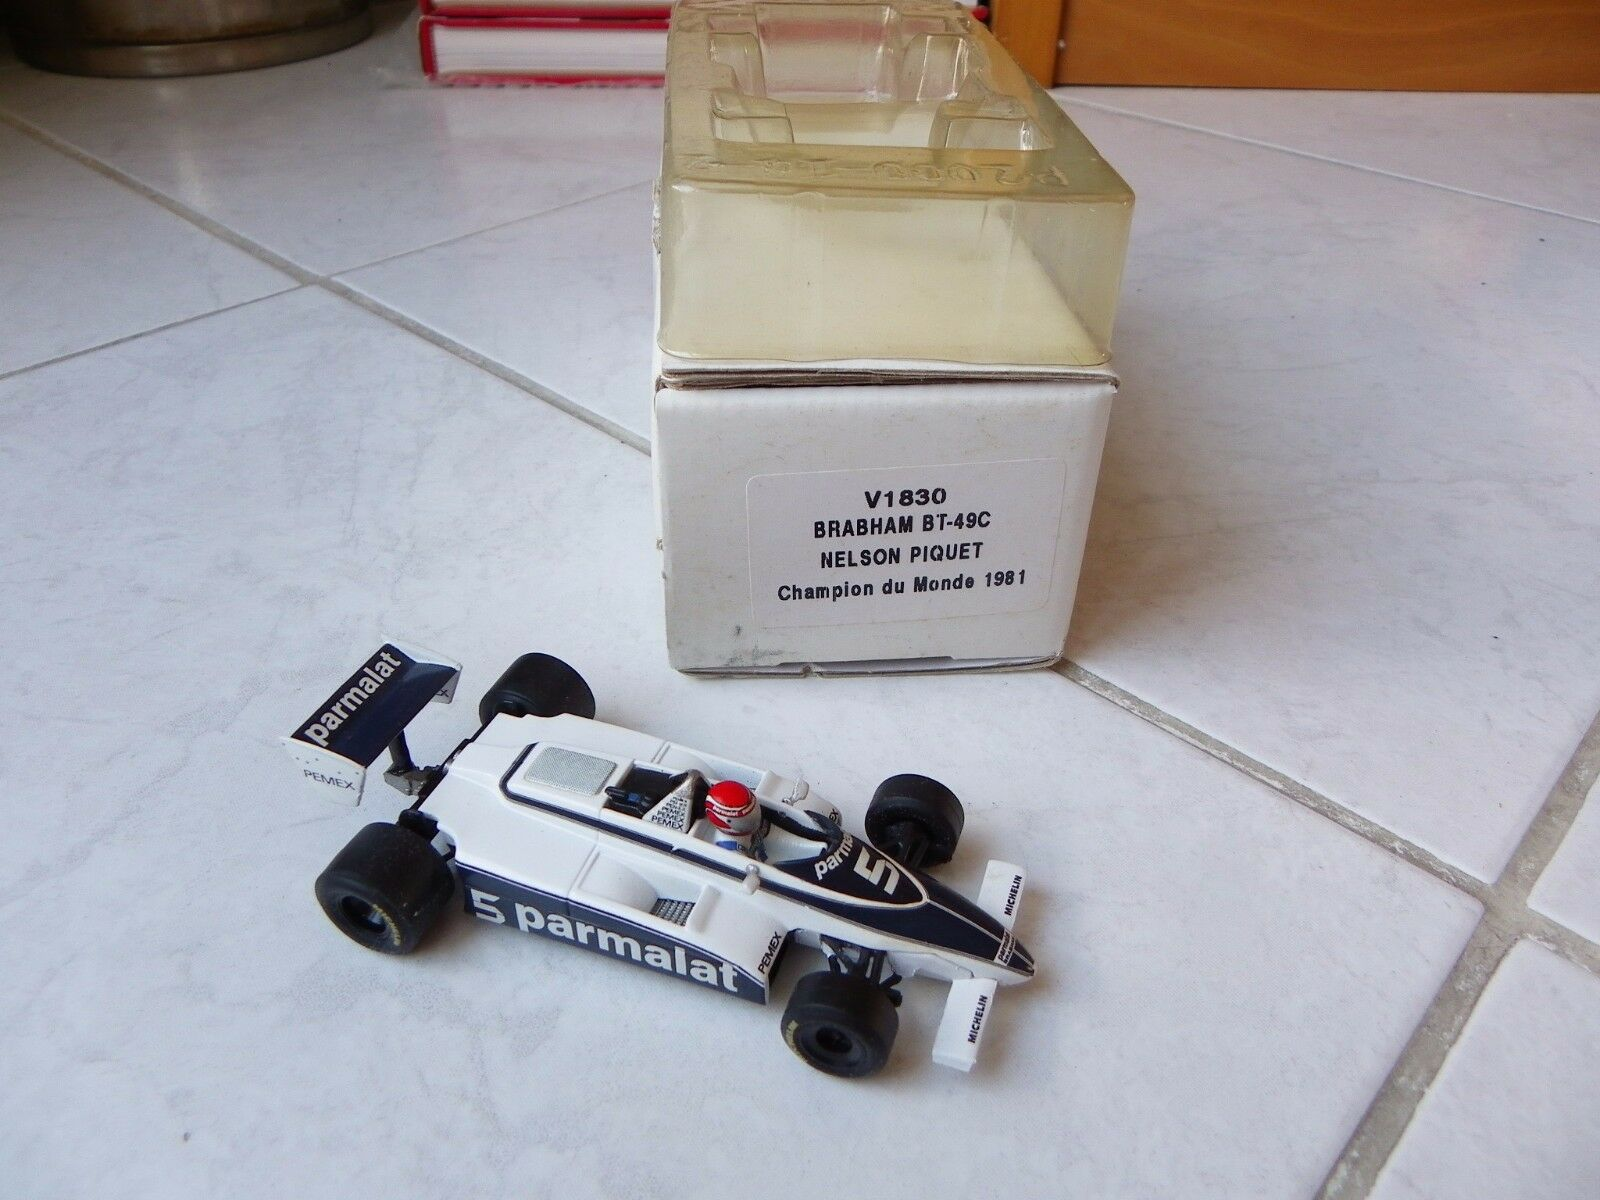 Brabham Ford BT49C BT-49C Nelson Piquet Quartzo 1 43 1981 F1 World Champion